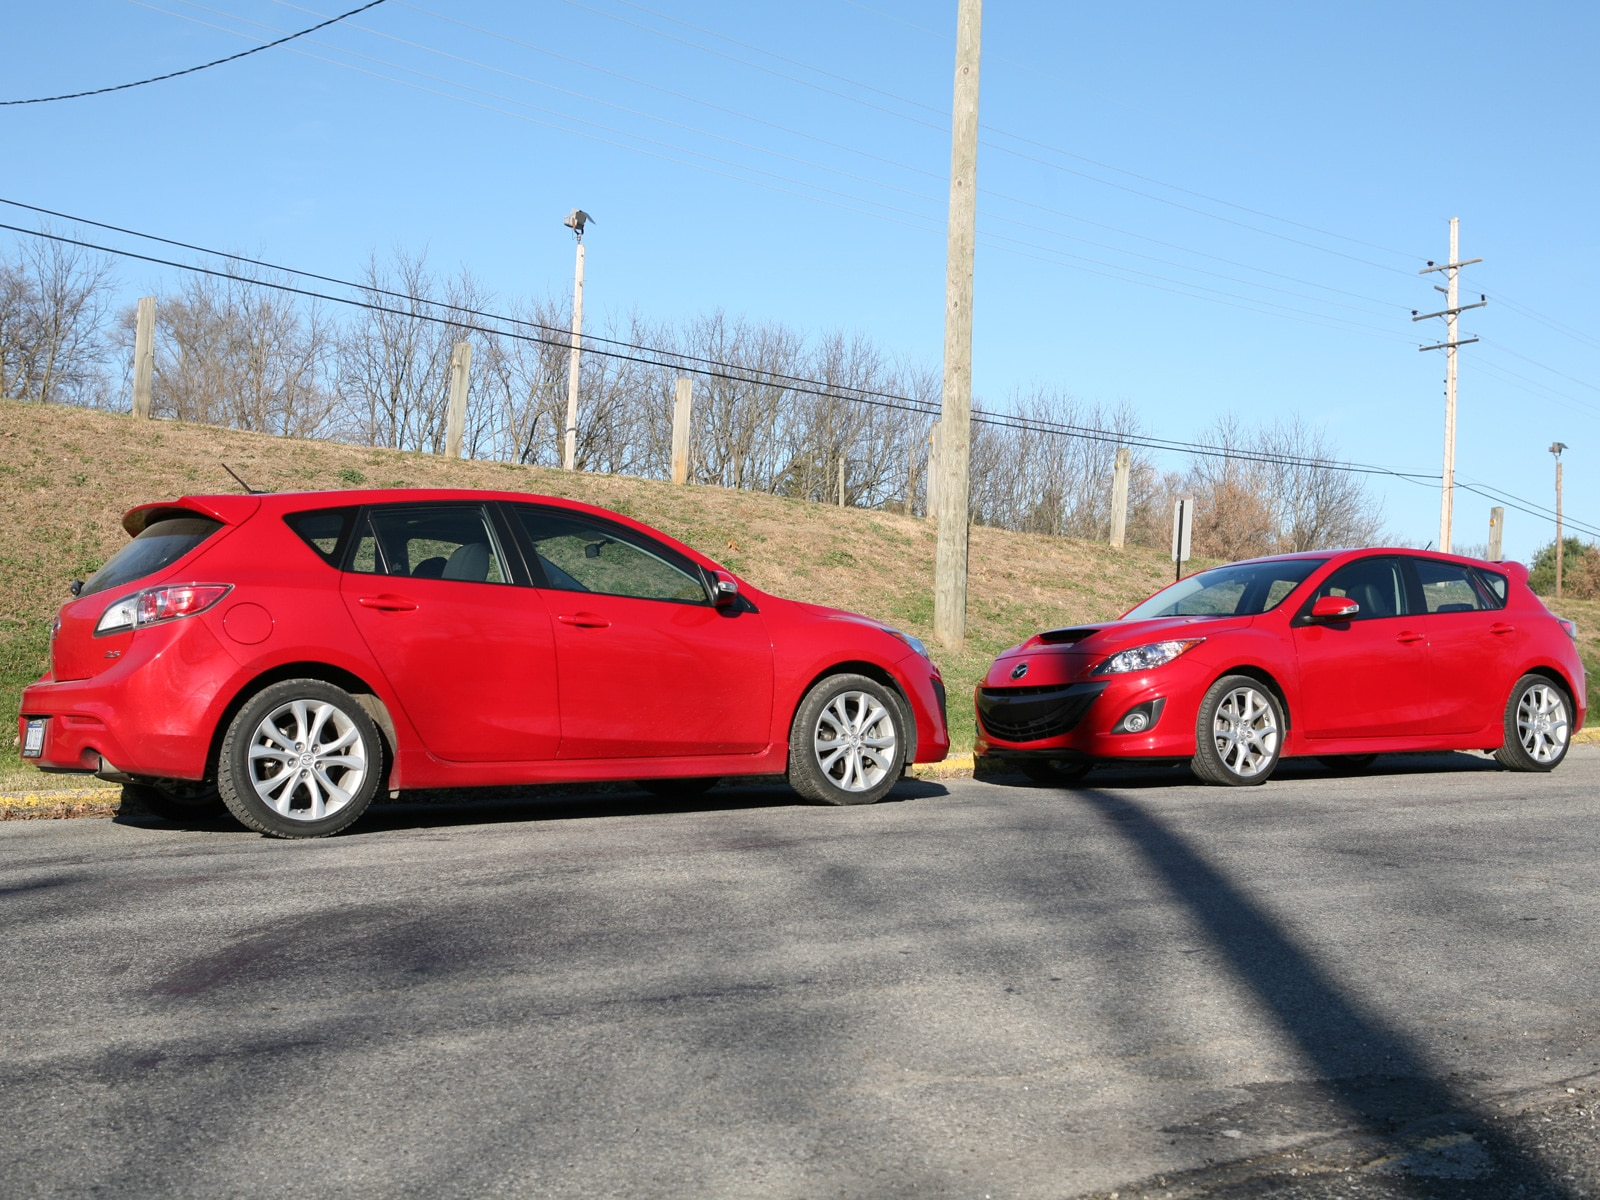 0911 03 Z 2010 Mazda3 VS Mazdaspeed3 Head To Head